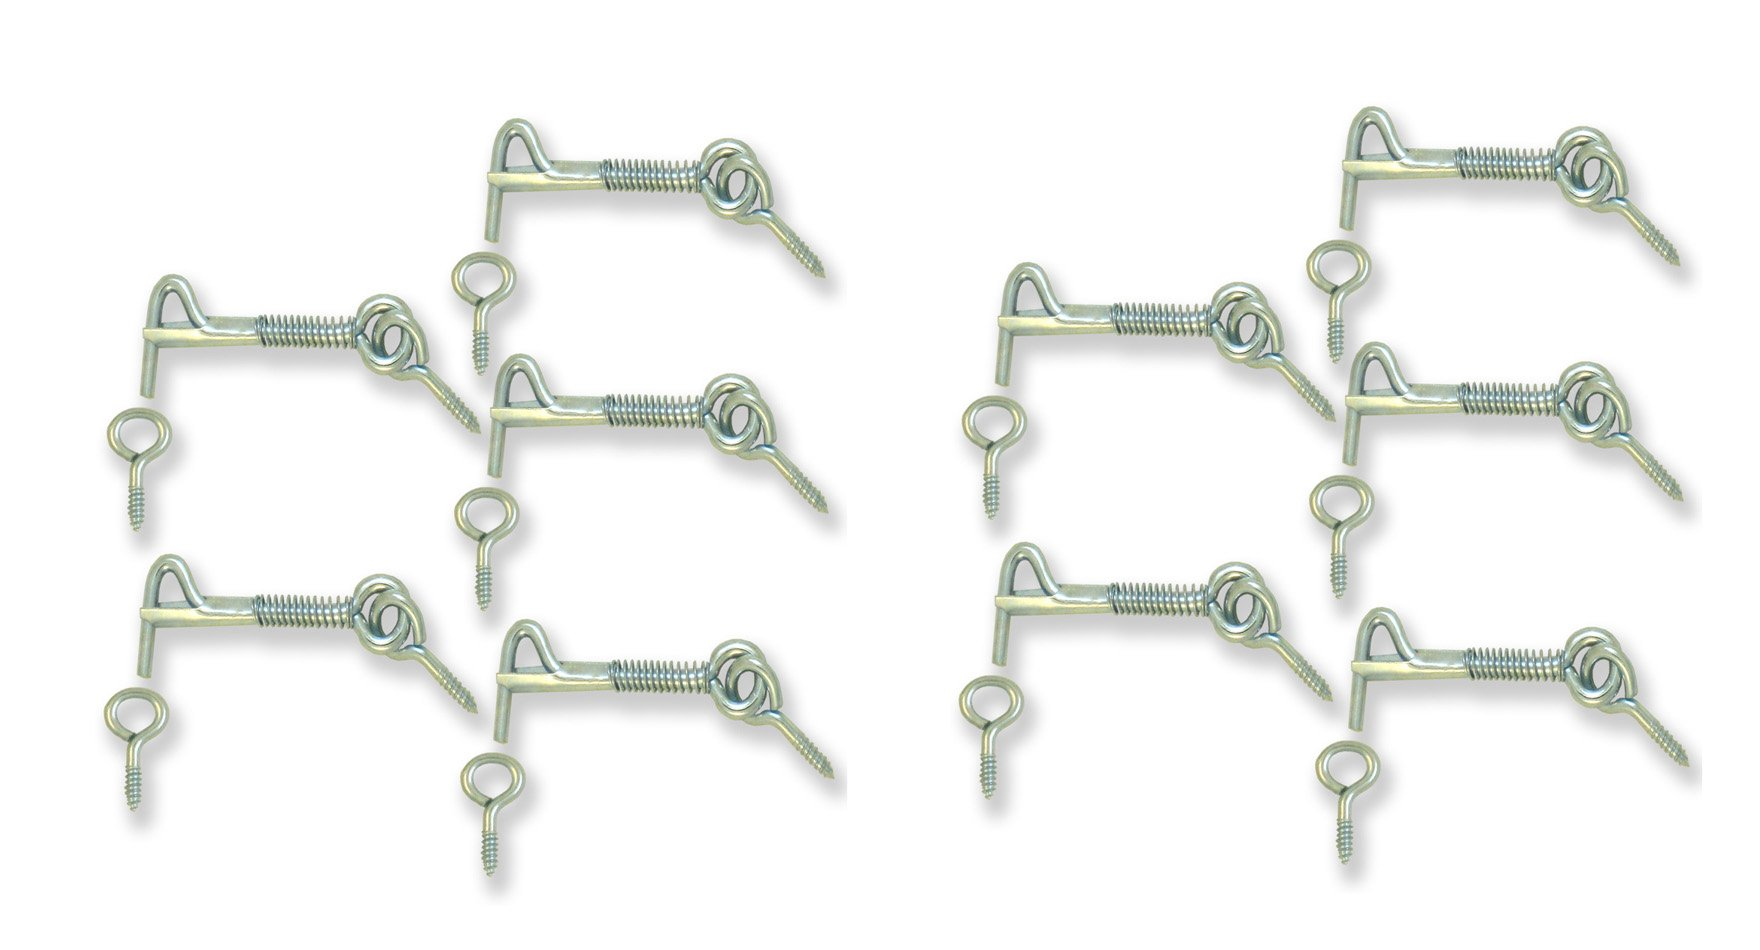 Safety Latch, Hook & Eye with Spring, Zinc, 2 Inch [1860-10] Eye distance can vary from 2.1/4'' to 2.1/2'' 10 pack ALDABA o GANCHO para Puerta